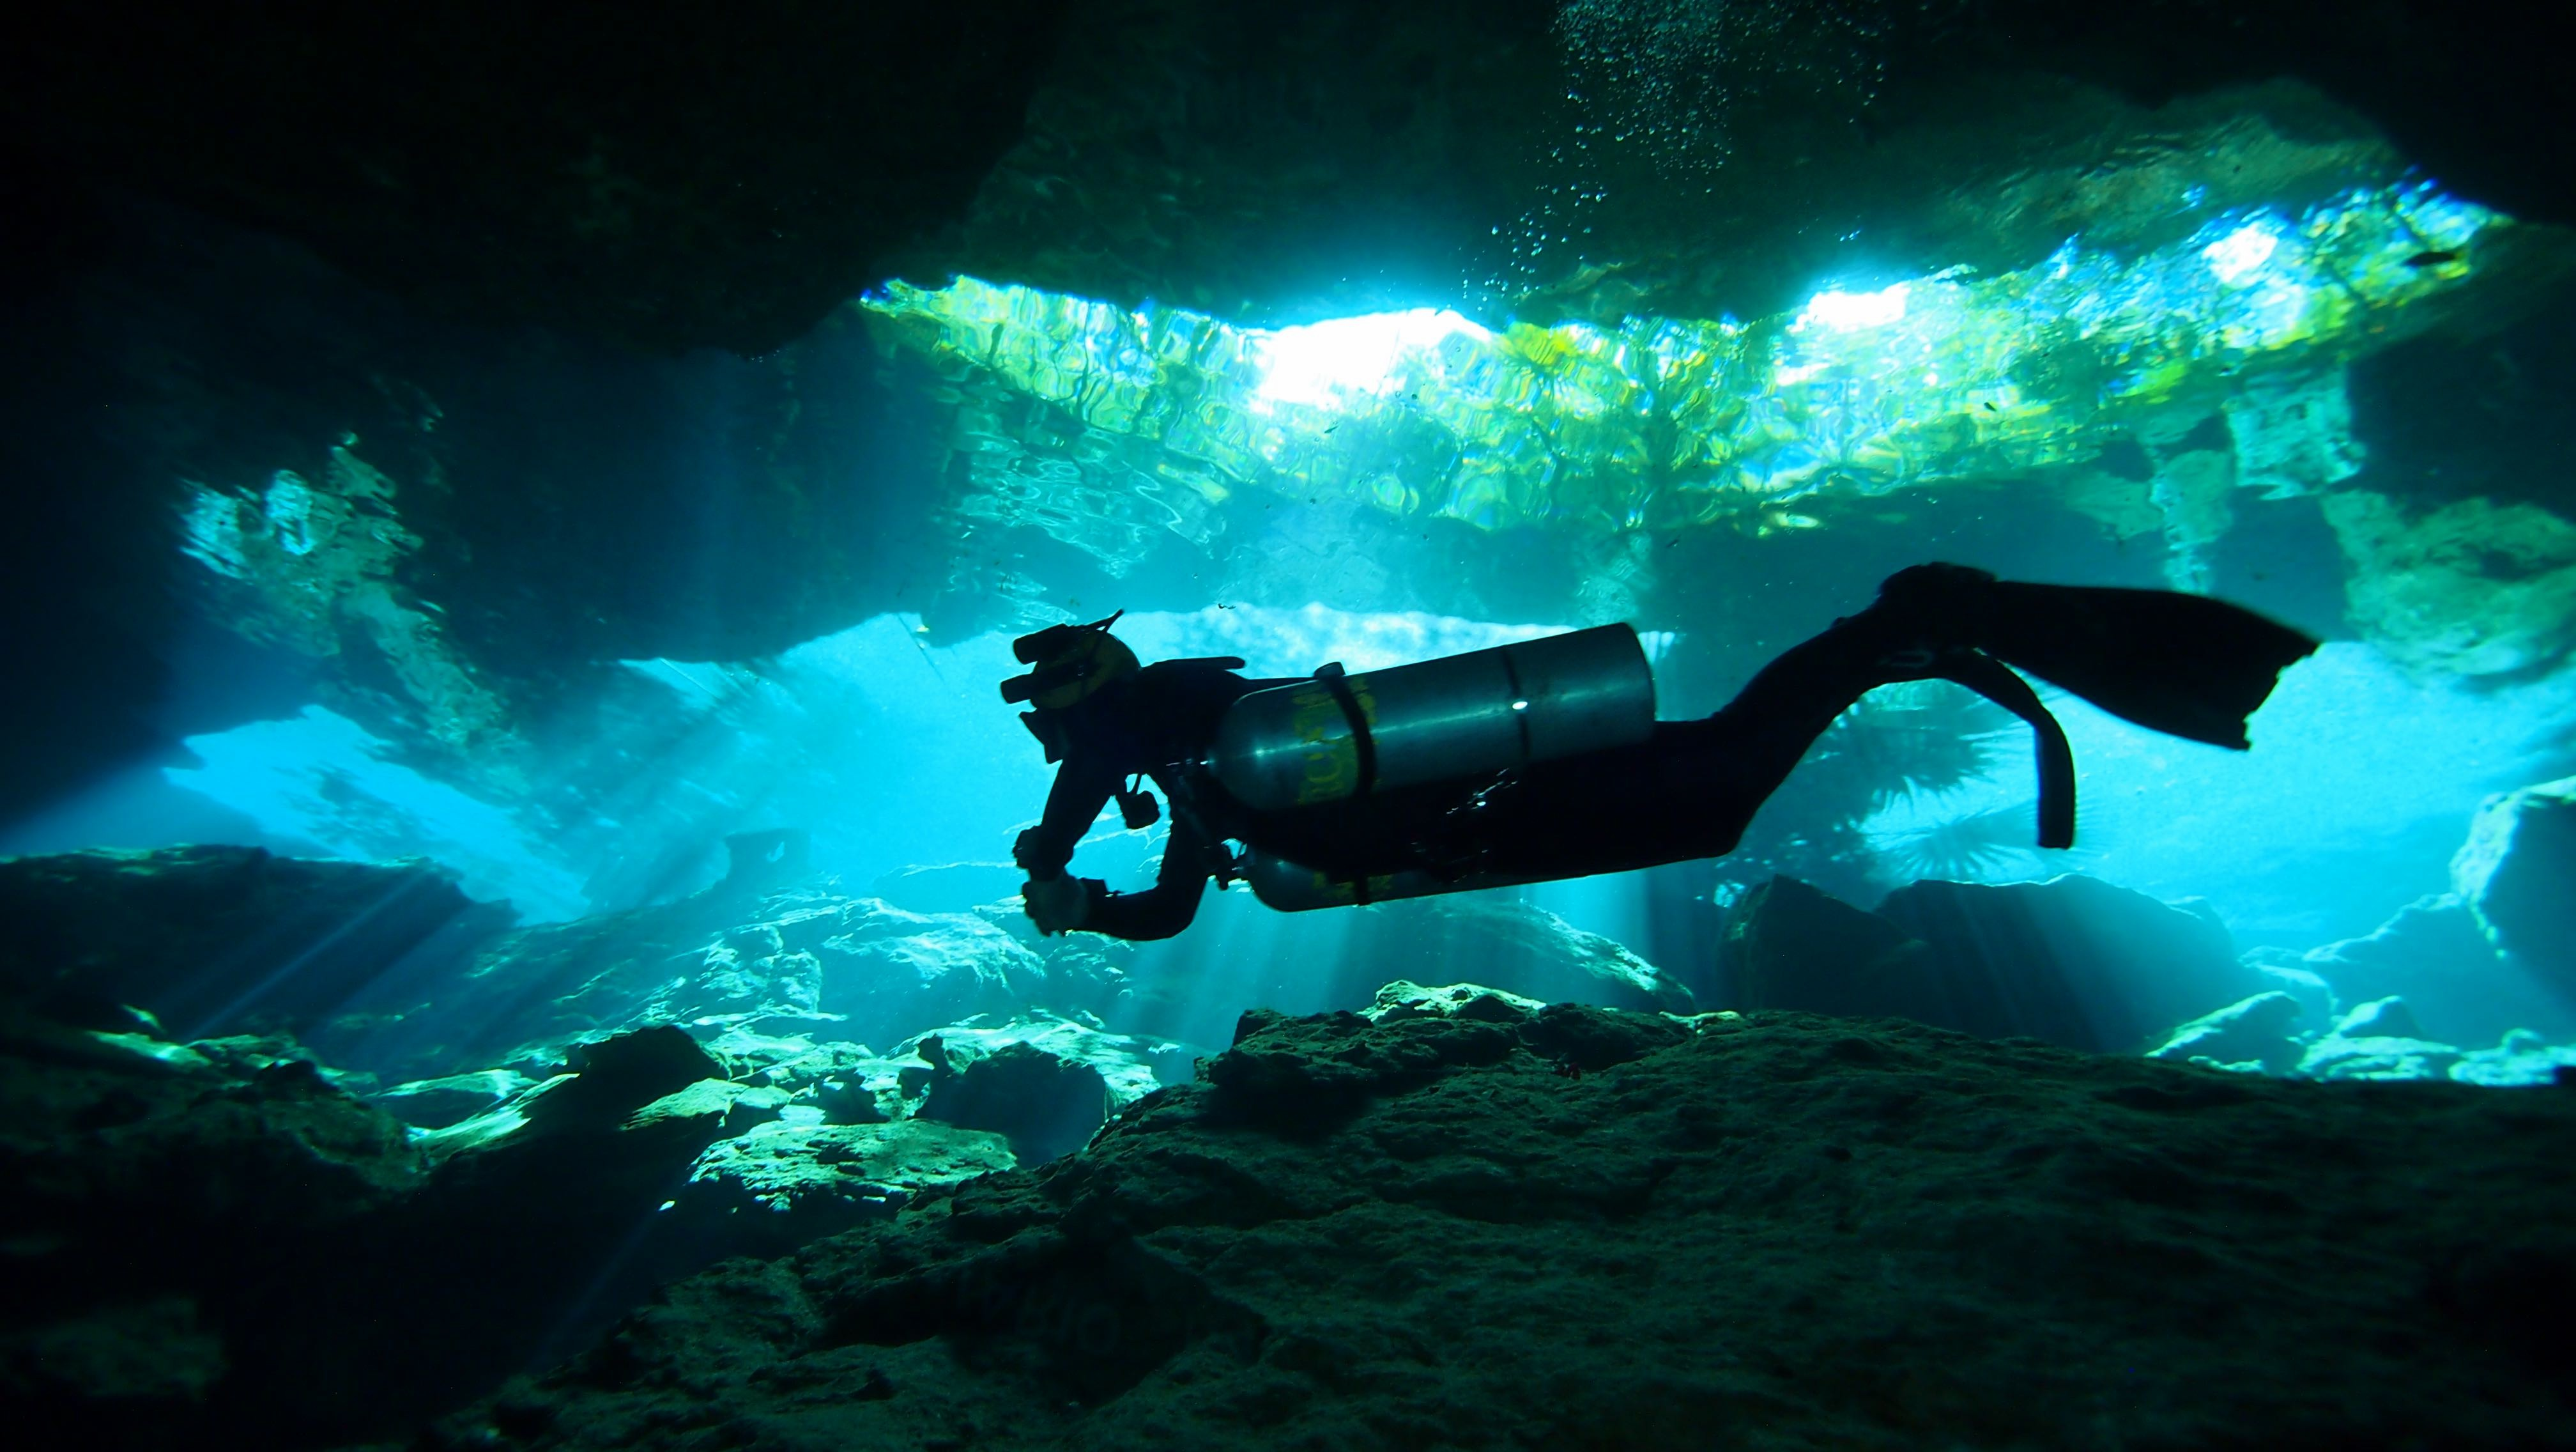 Sidemount in caves